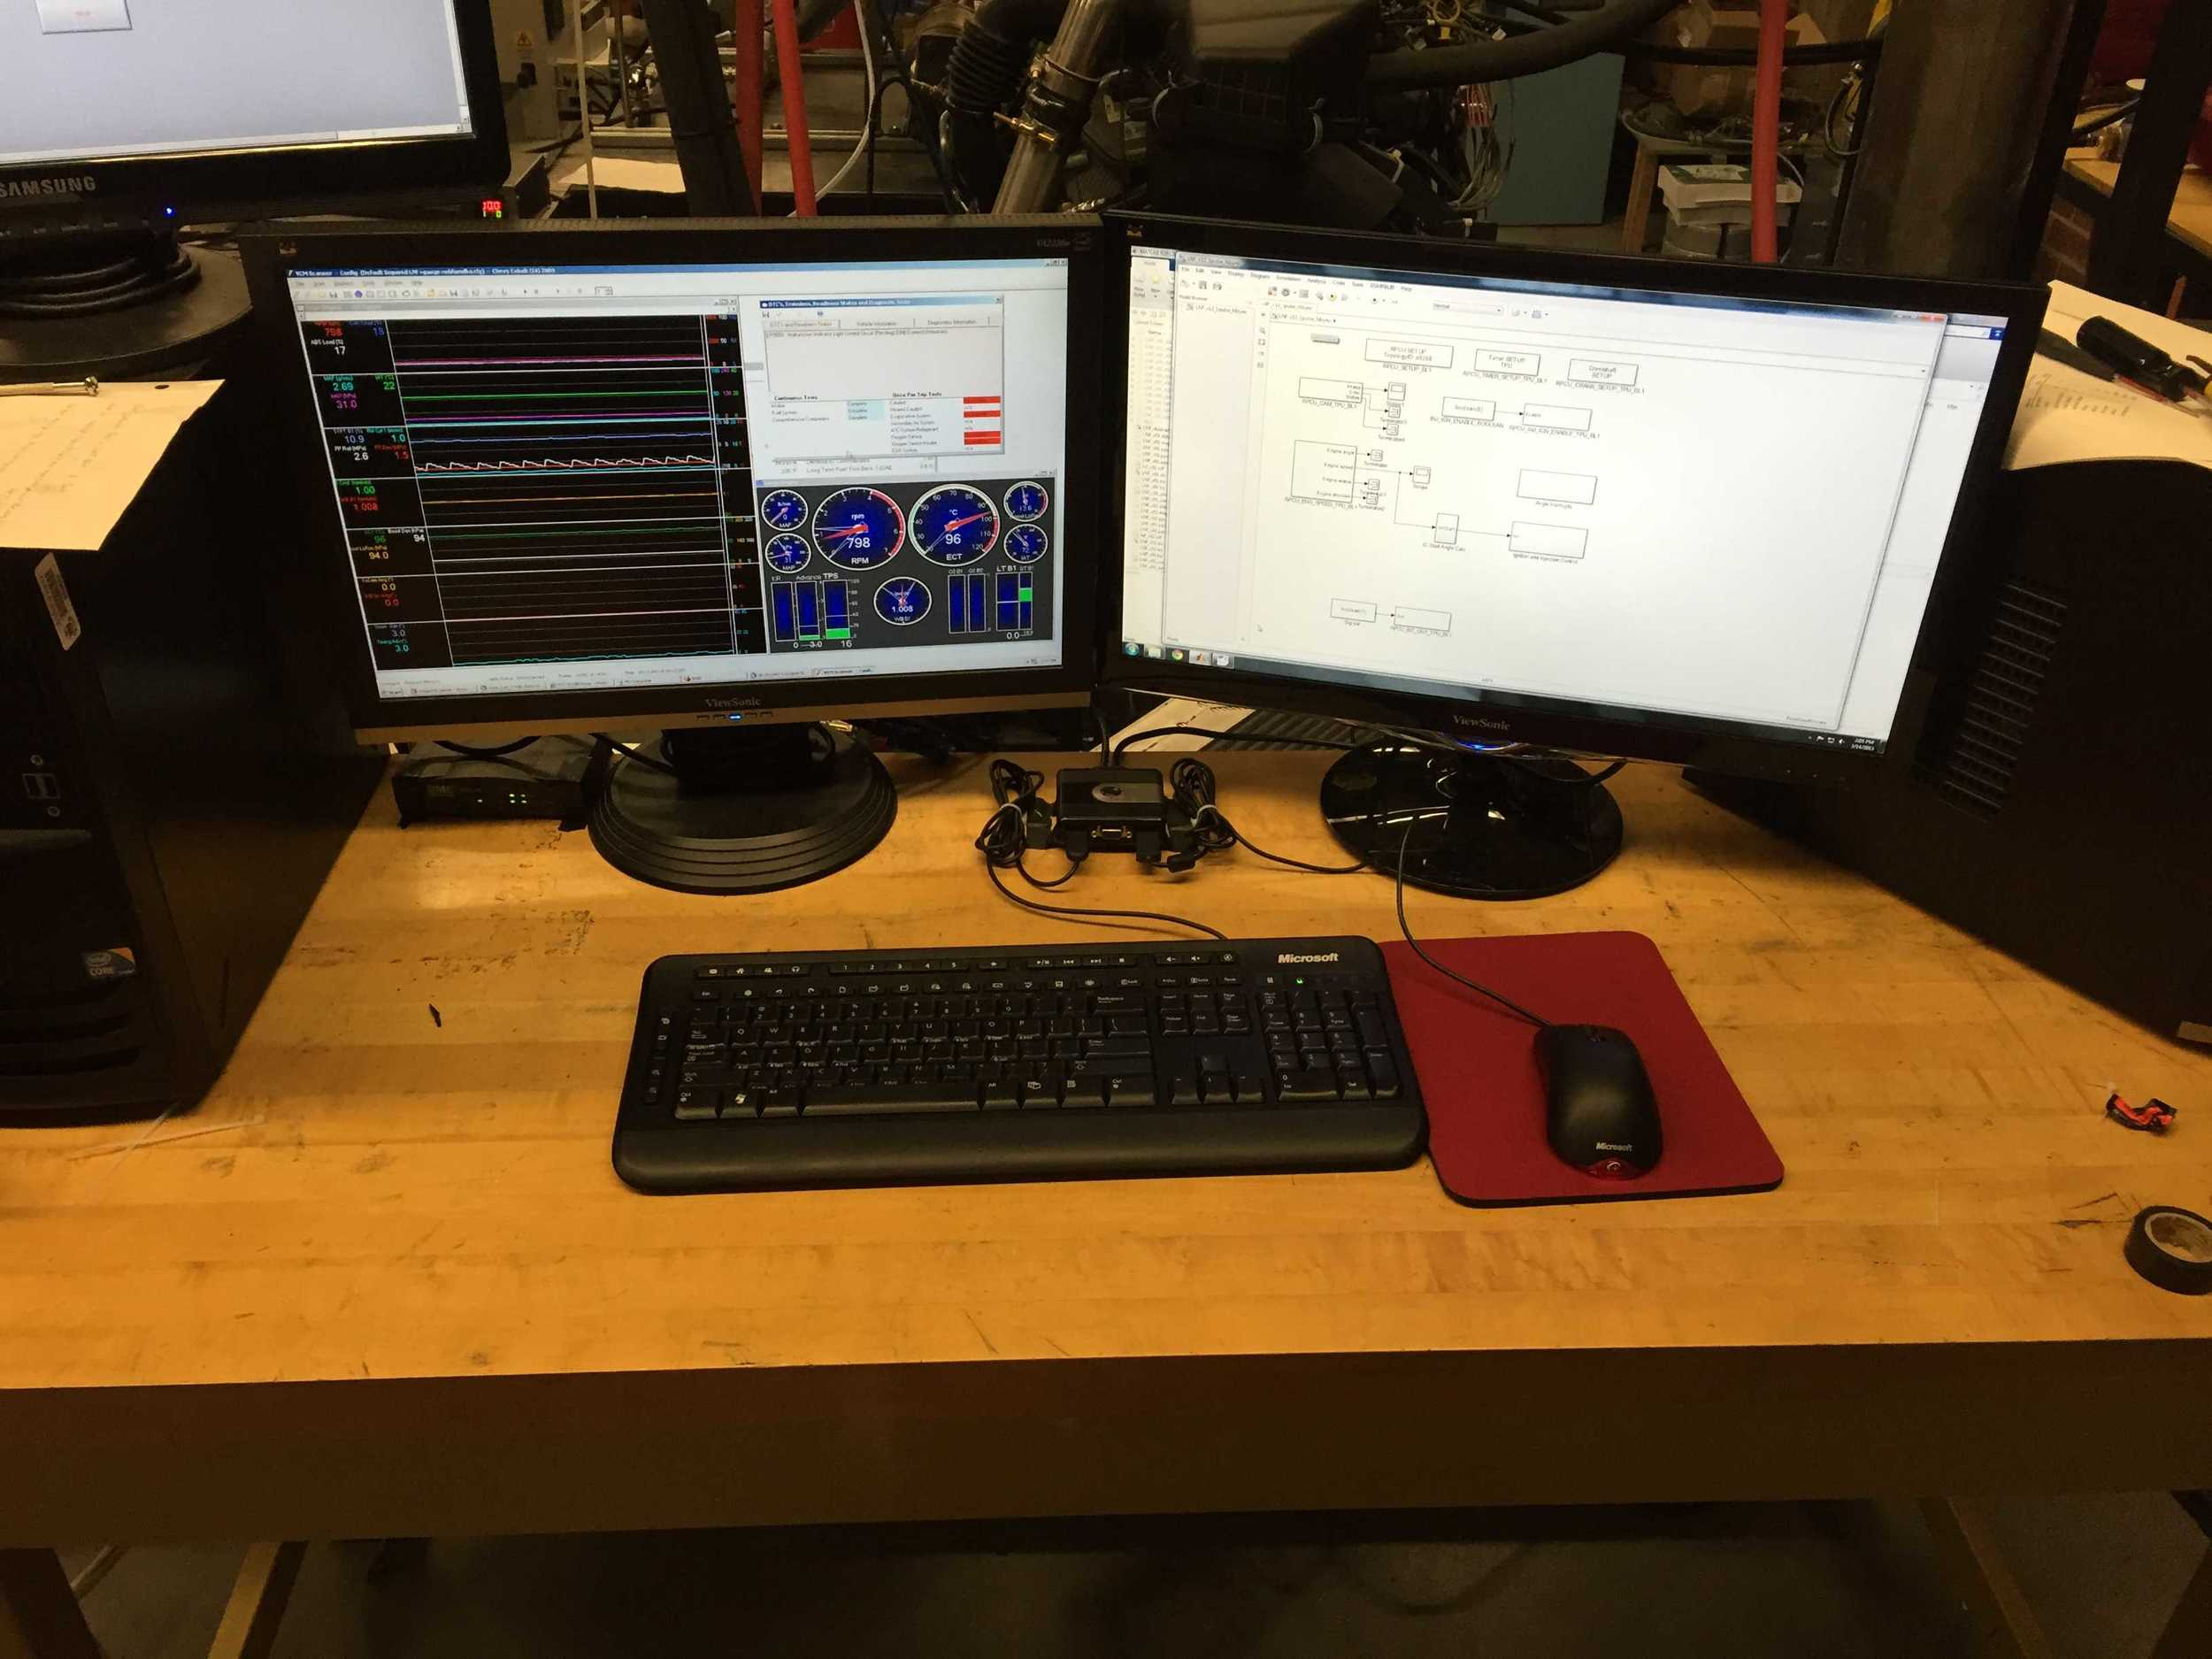 Final desk setup. One keyboard and mouse controls both computers.